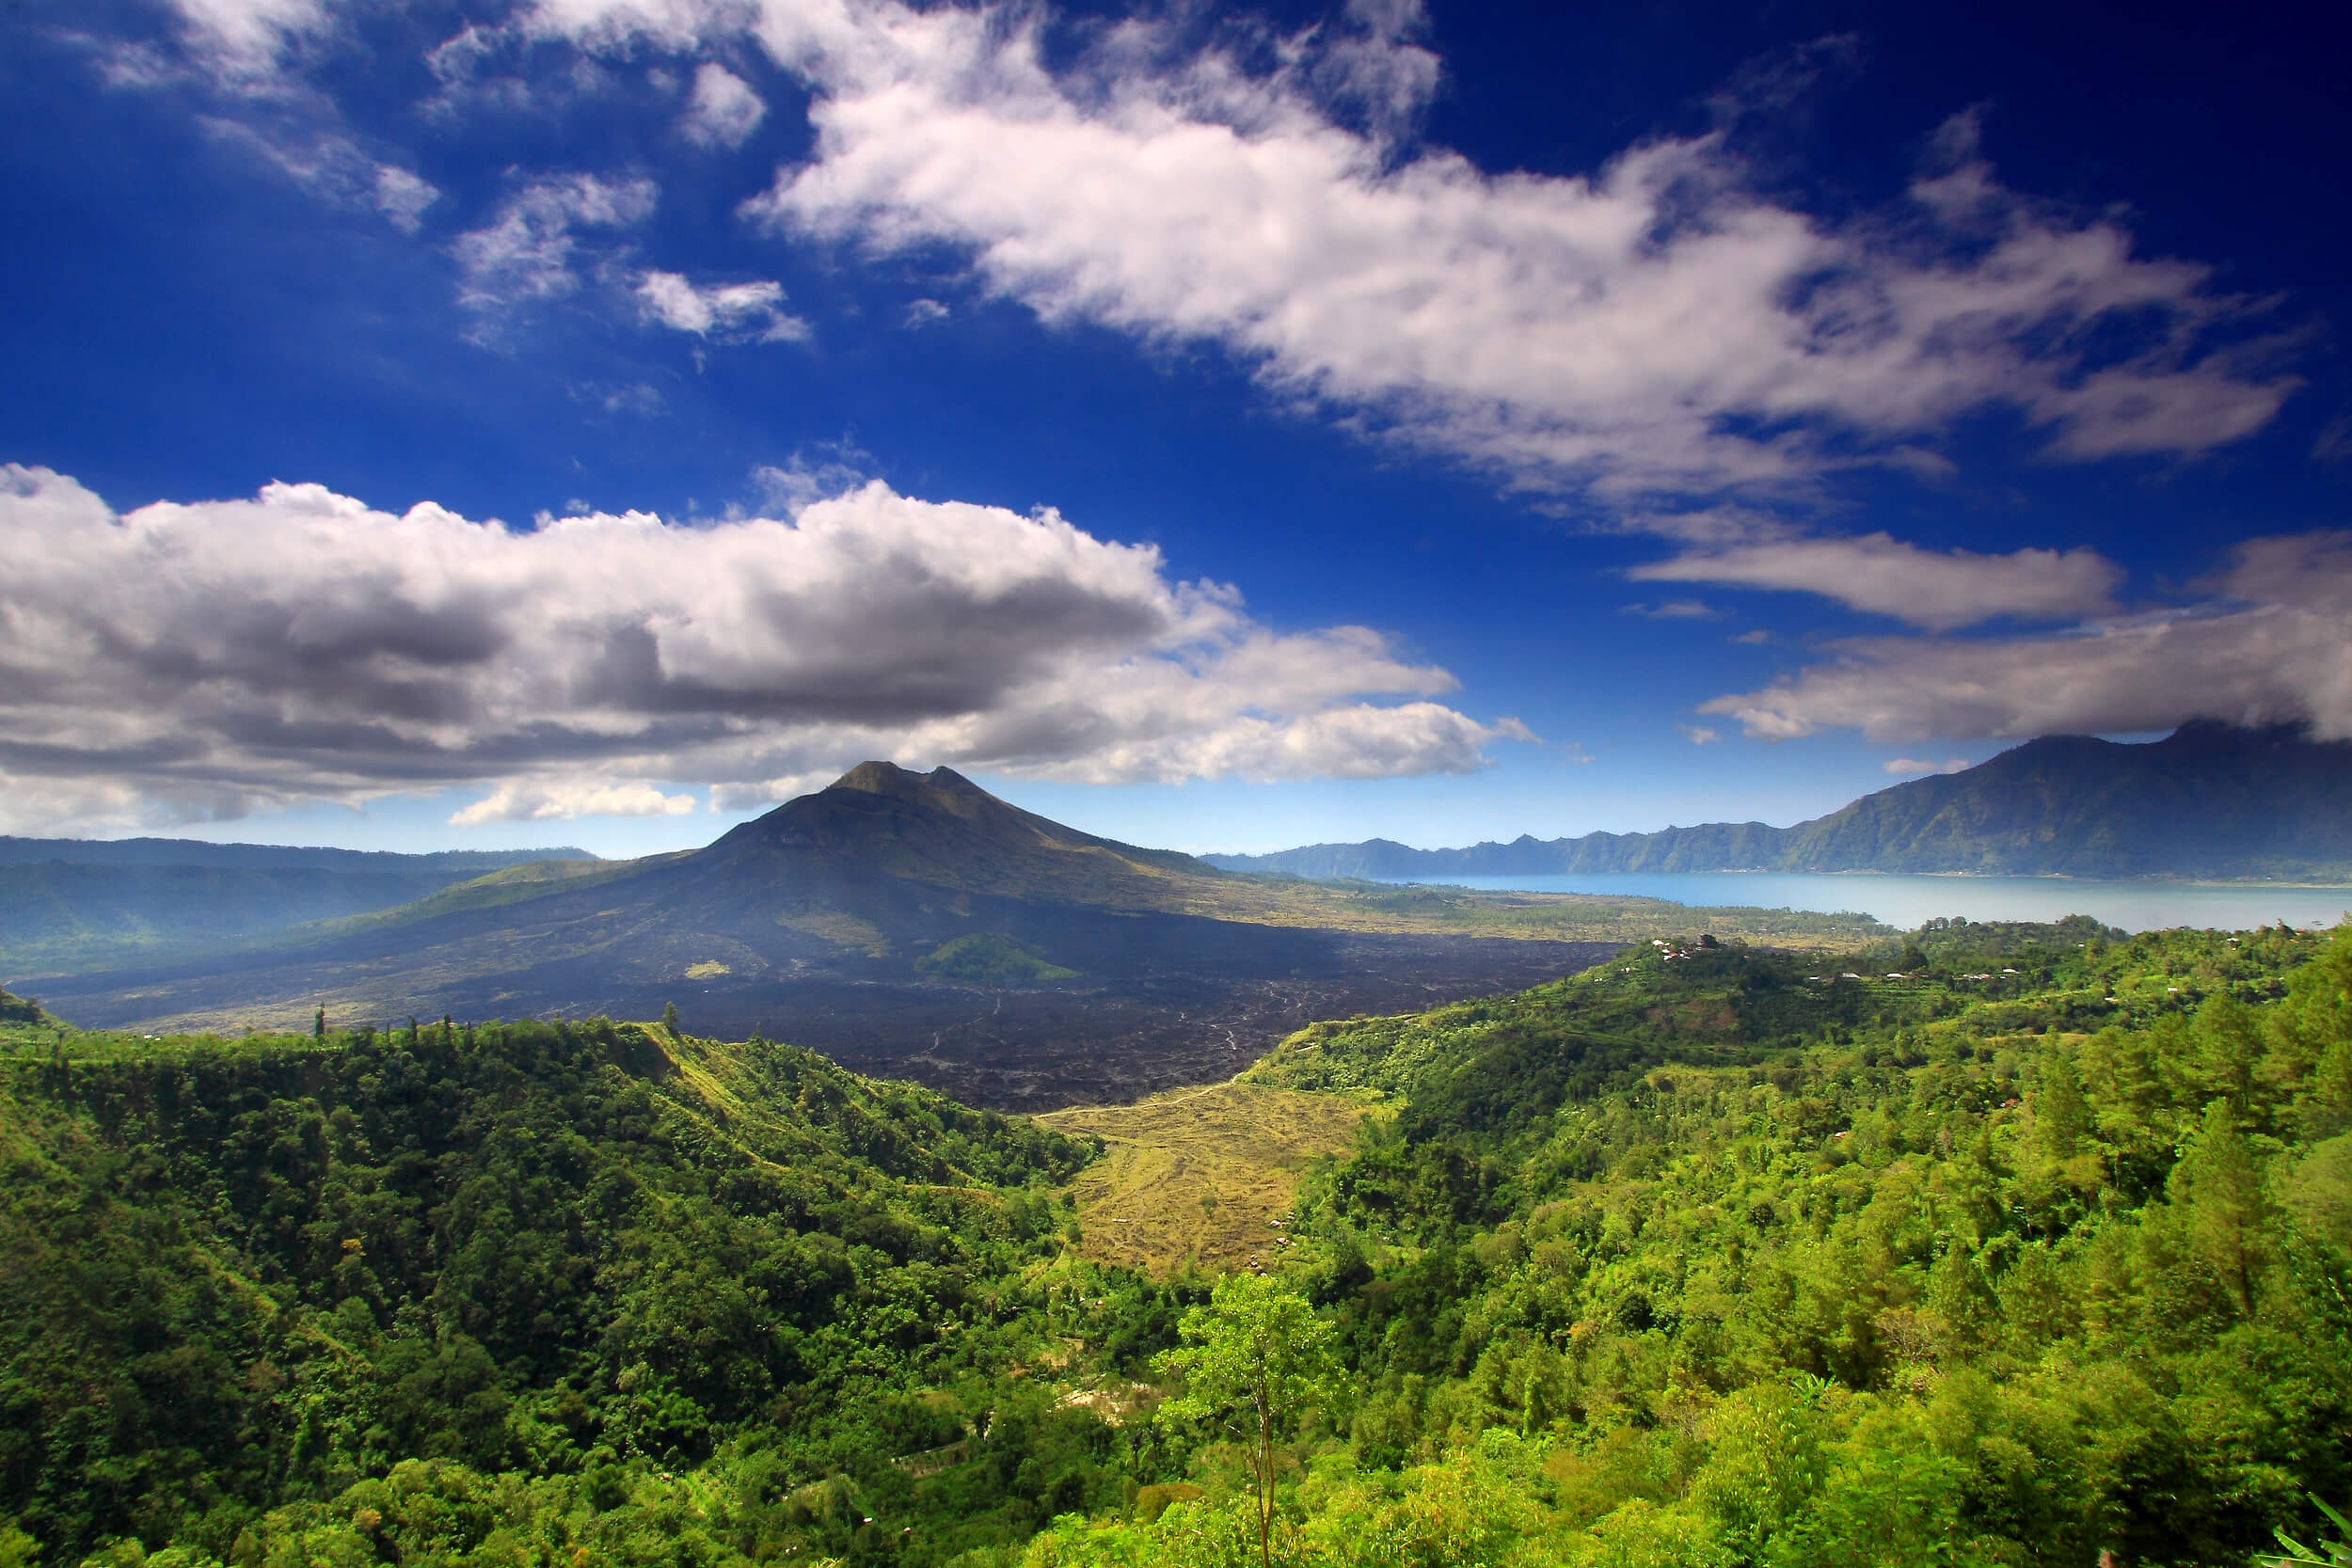 Mount_batur_and_lake_bali_indonesia